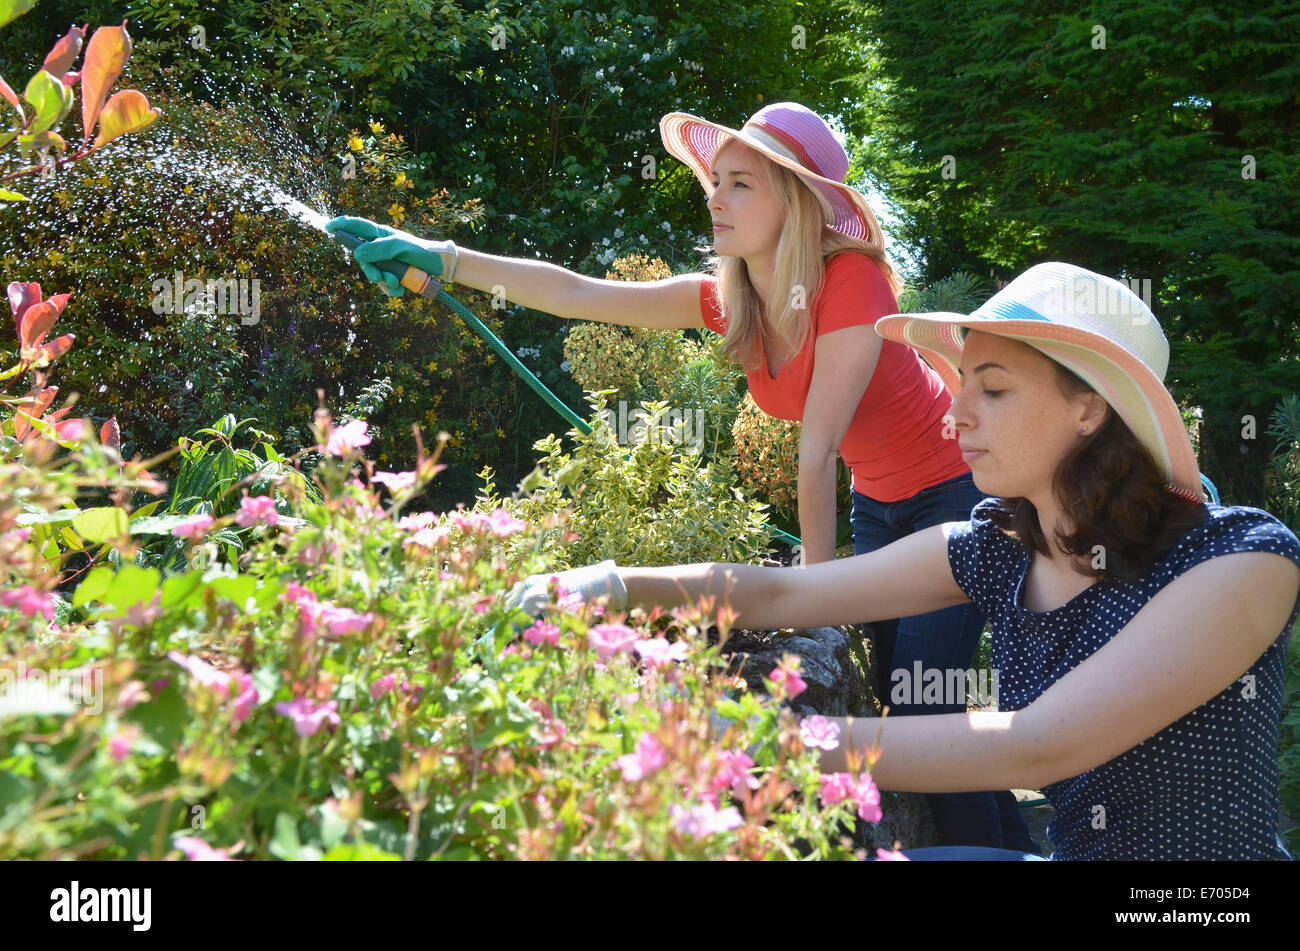 Young women watering garden with hosepipe - Stock Image